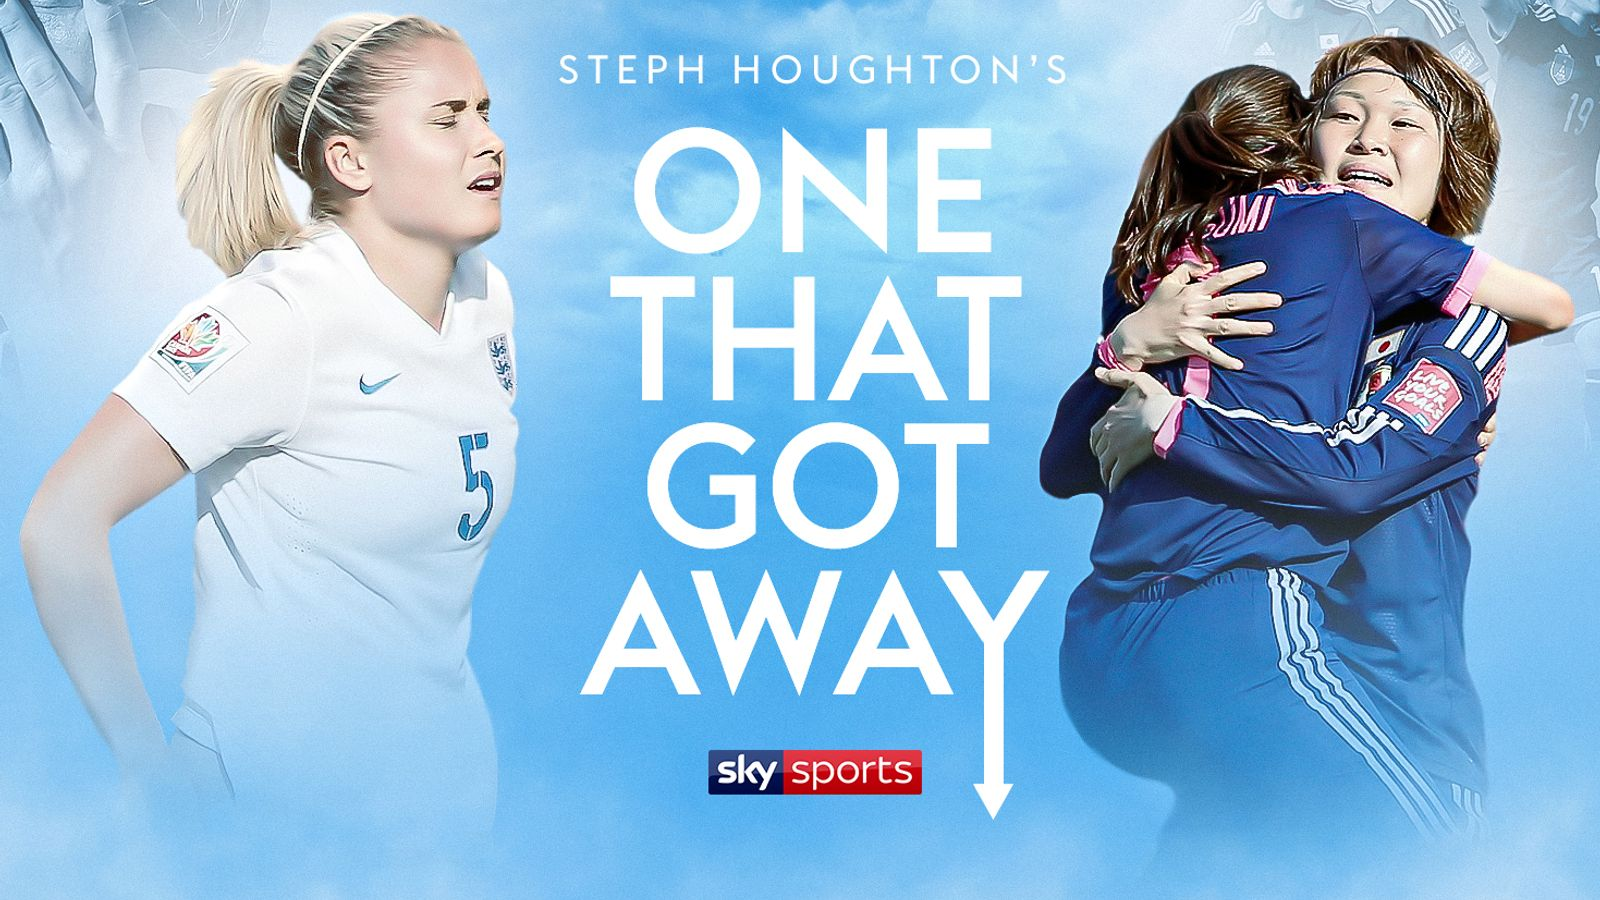 The One That Got Away: Steph Houghton reveals all about 2015 Women's World Cup semi-final heartbreak